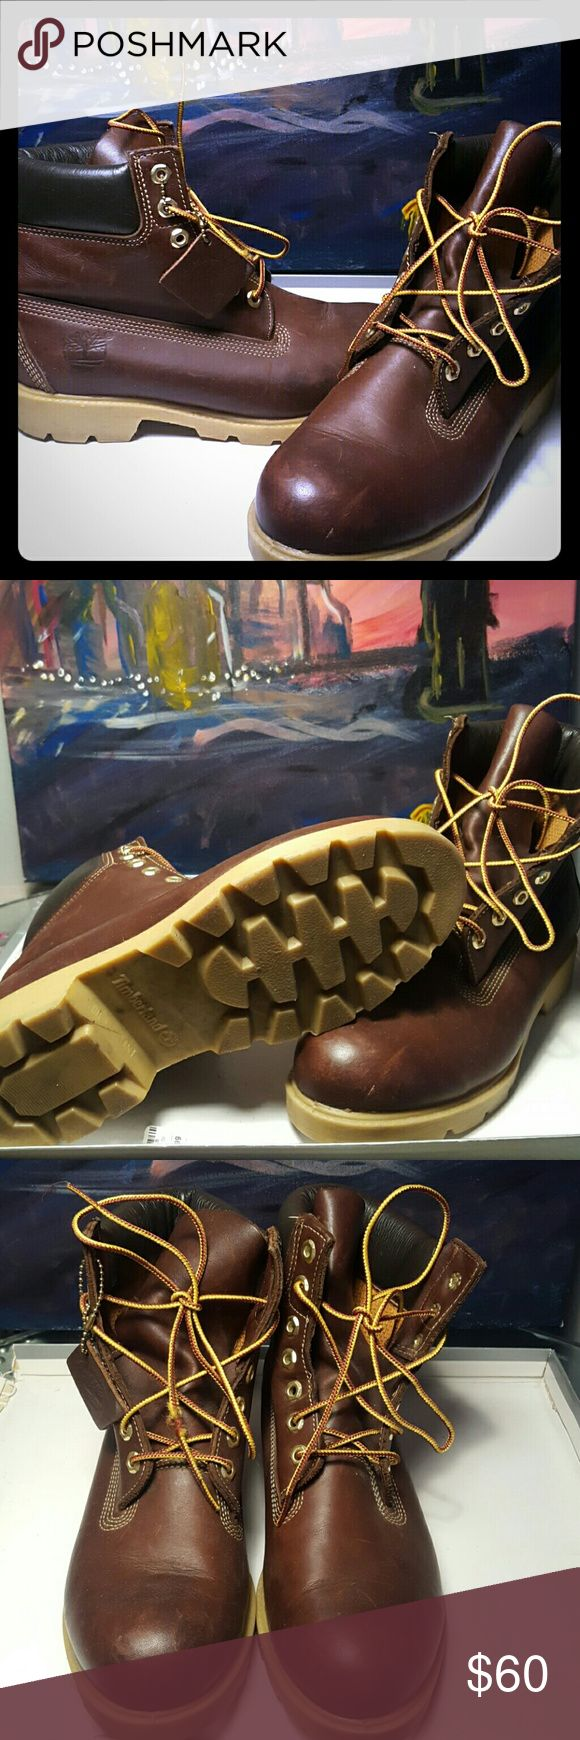 Gently worn Brown leather Timberland boot Men's boot size 7.5 gently worn construction boot Timberland Shoes Winter & Rain Boots